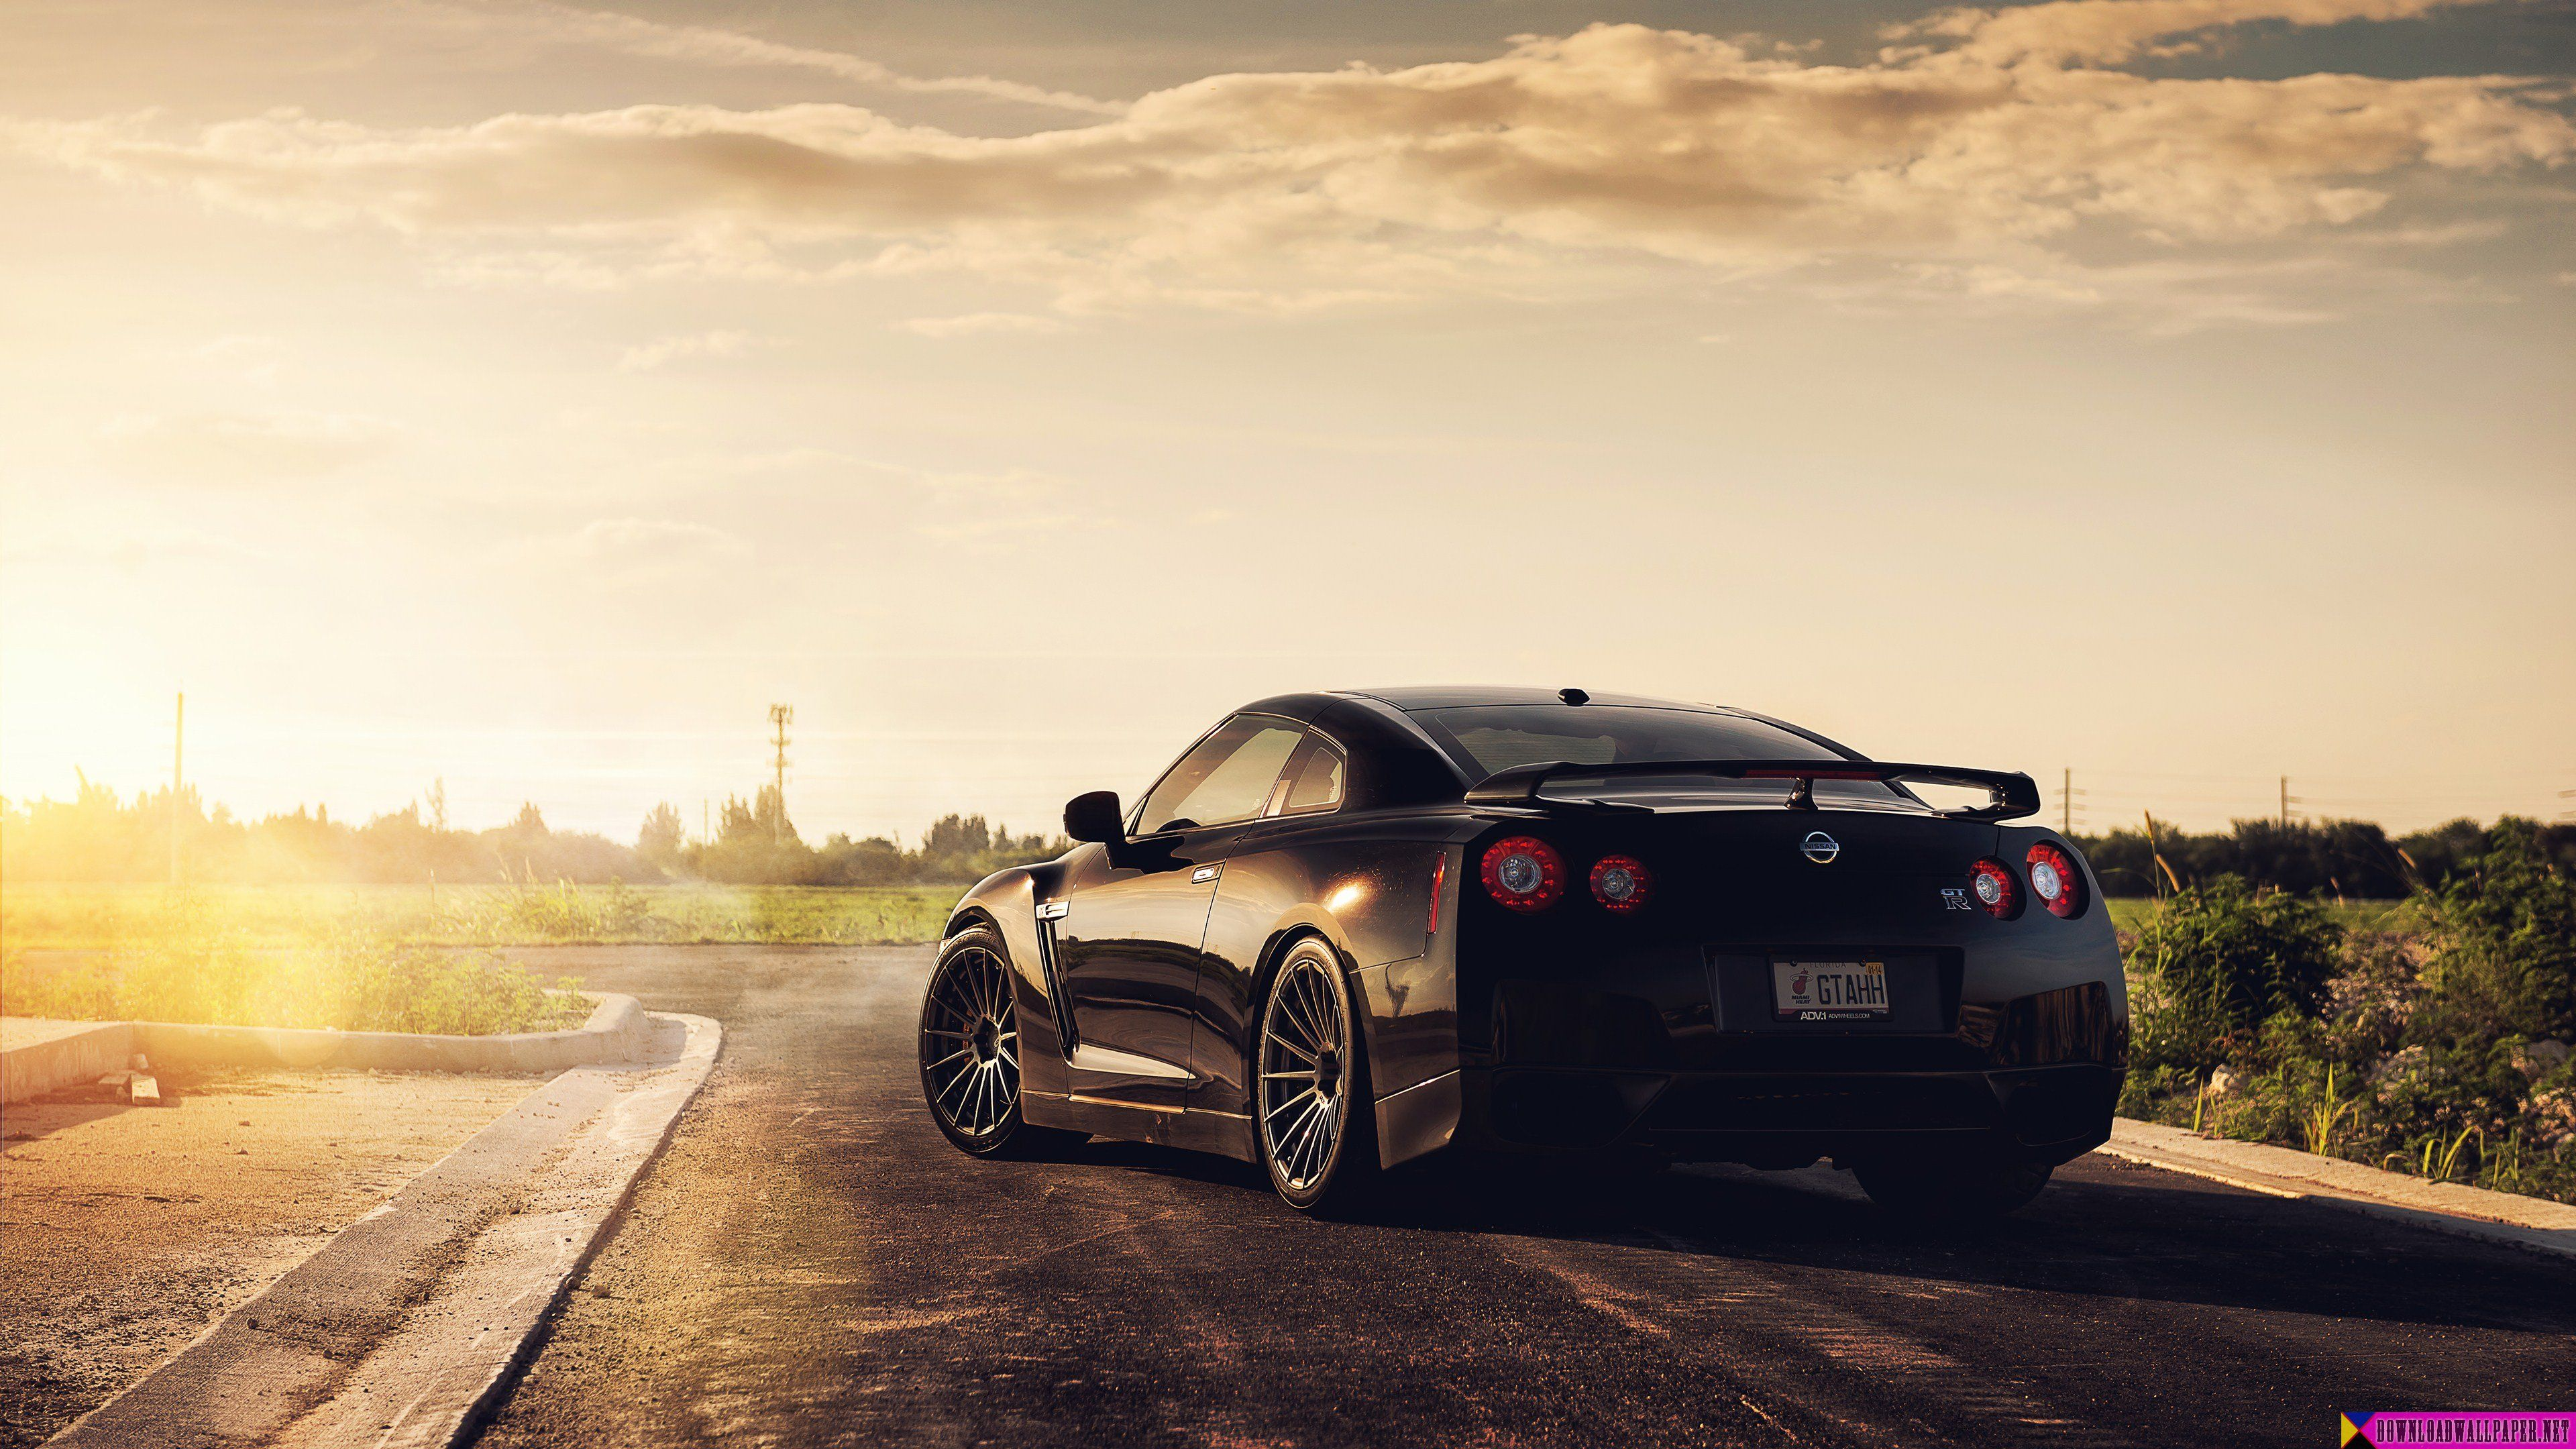 Nissan GTR 4K HD Wallpaper Cars Wallpaper Pinterest